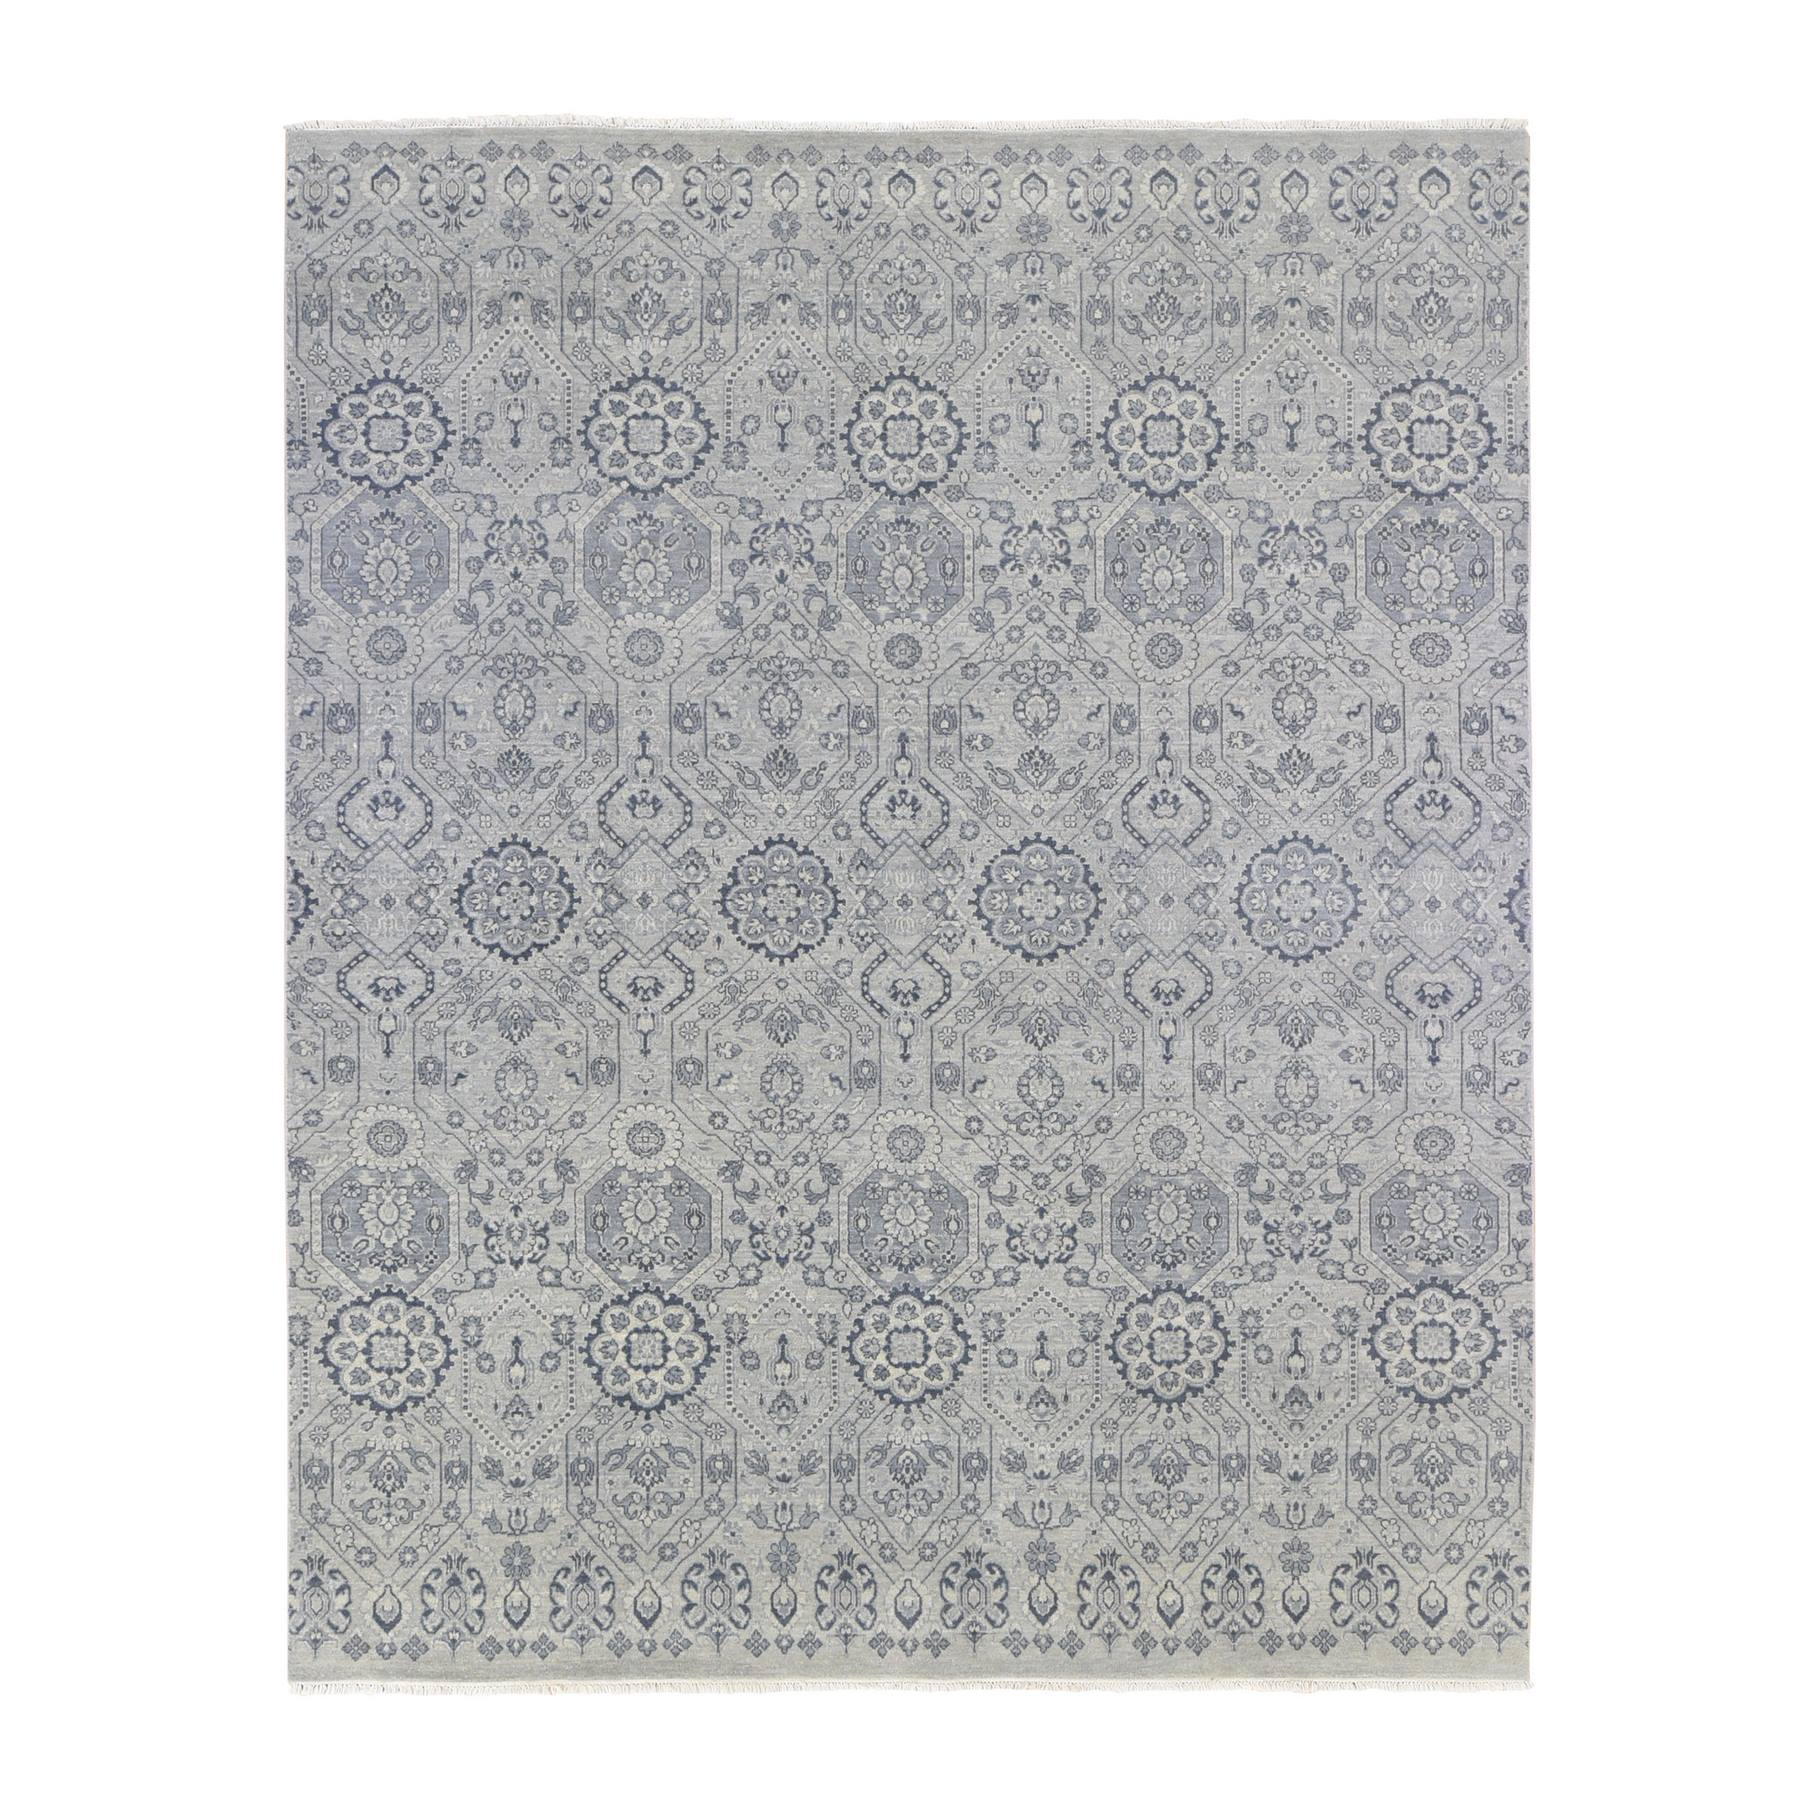 Agra And Turkish Collection Hand Knotted Grey Rug No: 1133904